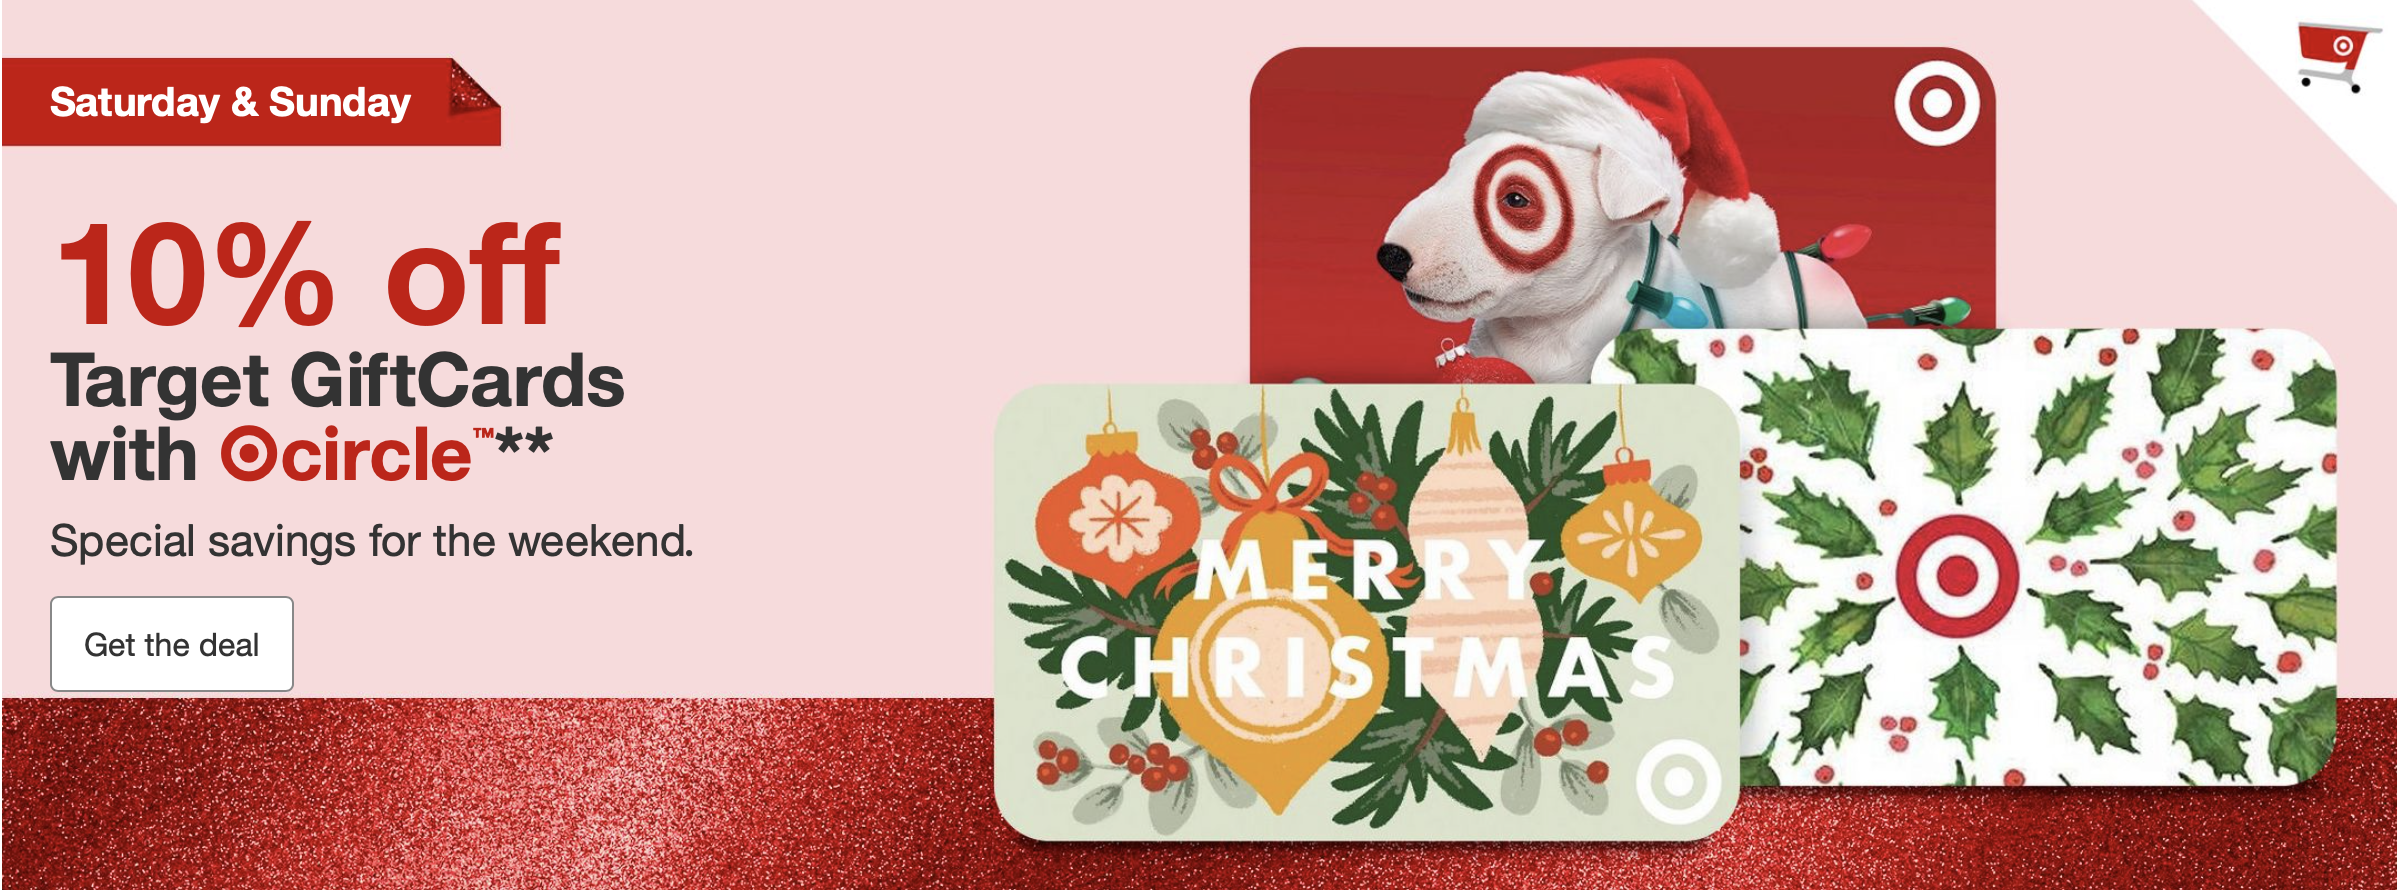 Target S Big Annual Gift Card Sale Is Today